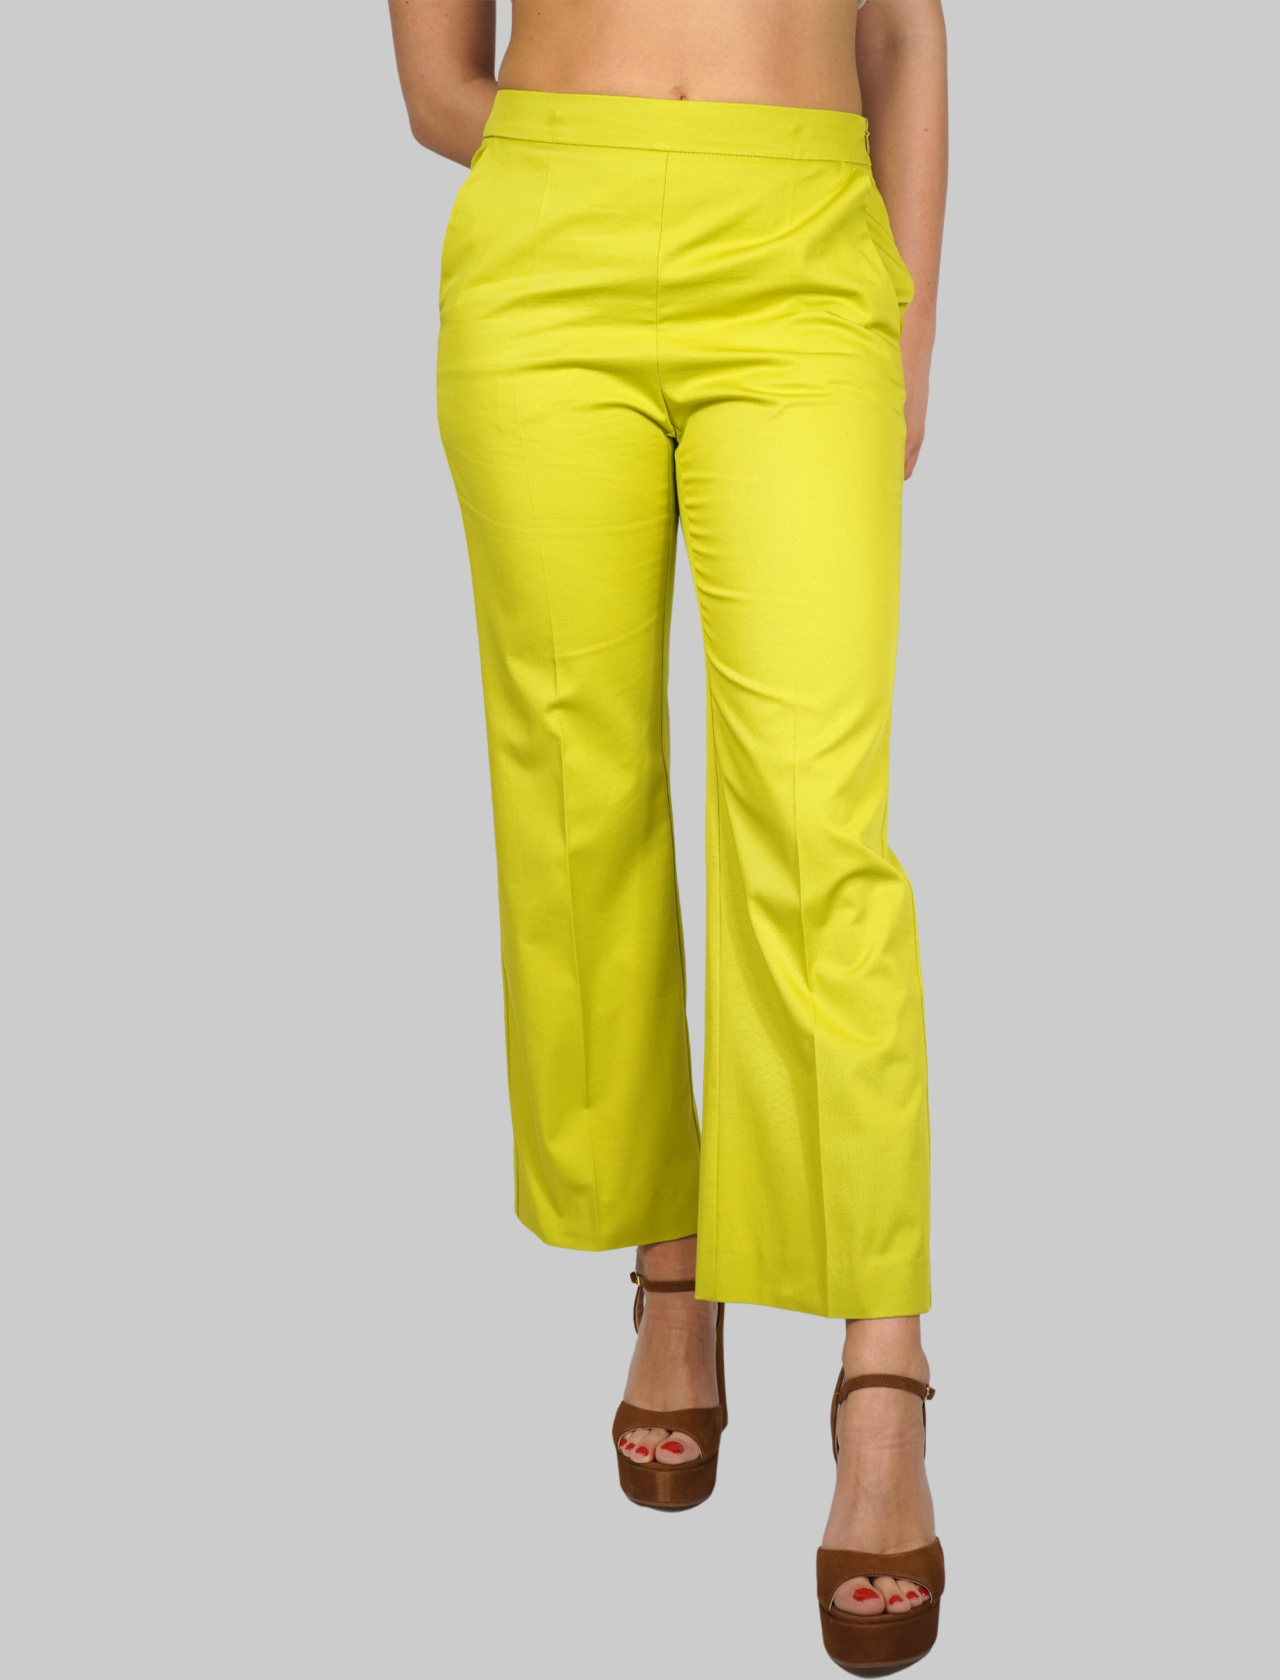 Women's Clothing Stretch Gabardine Birch Pants Maliparmi | Skirts and Pants | JH71441013660120